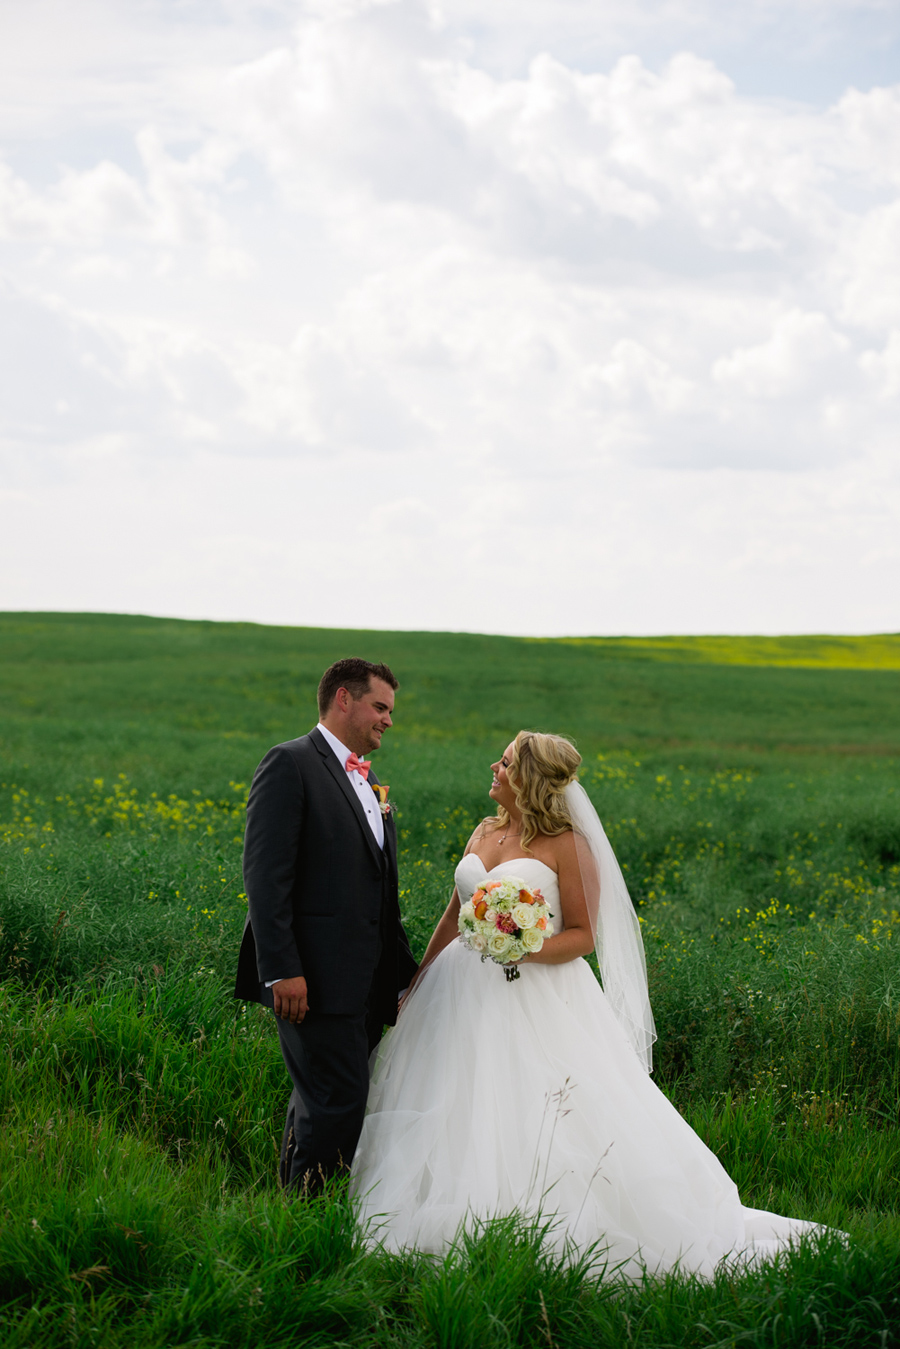 bbcollective_yeg_2016_ashleyandcraig_wedding_photography045.jpg